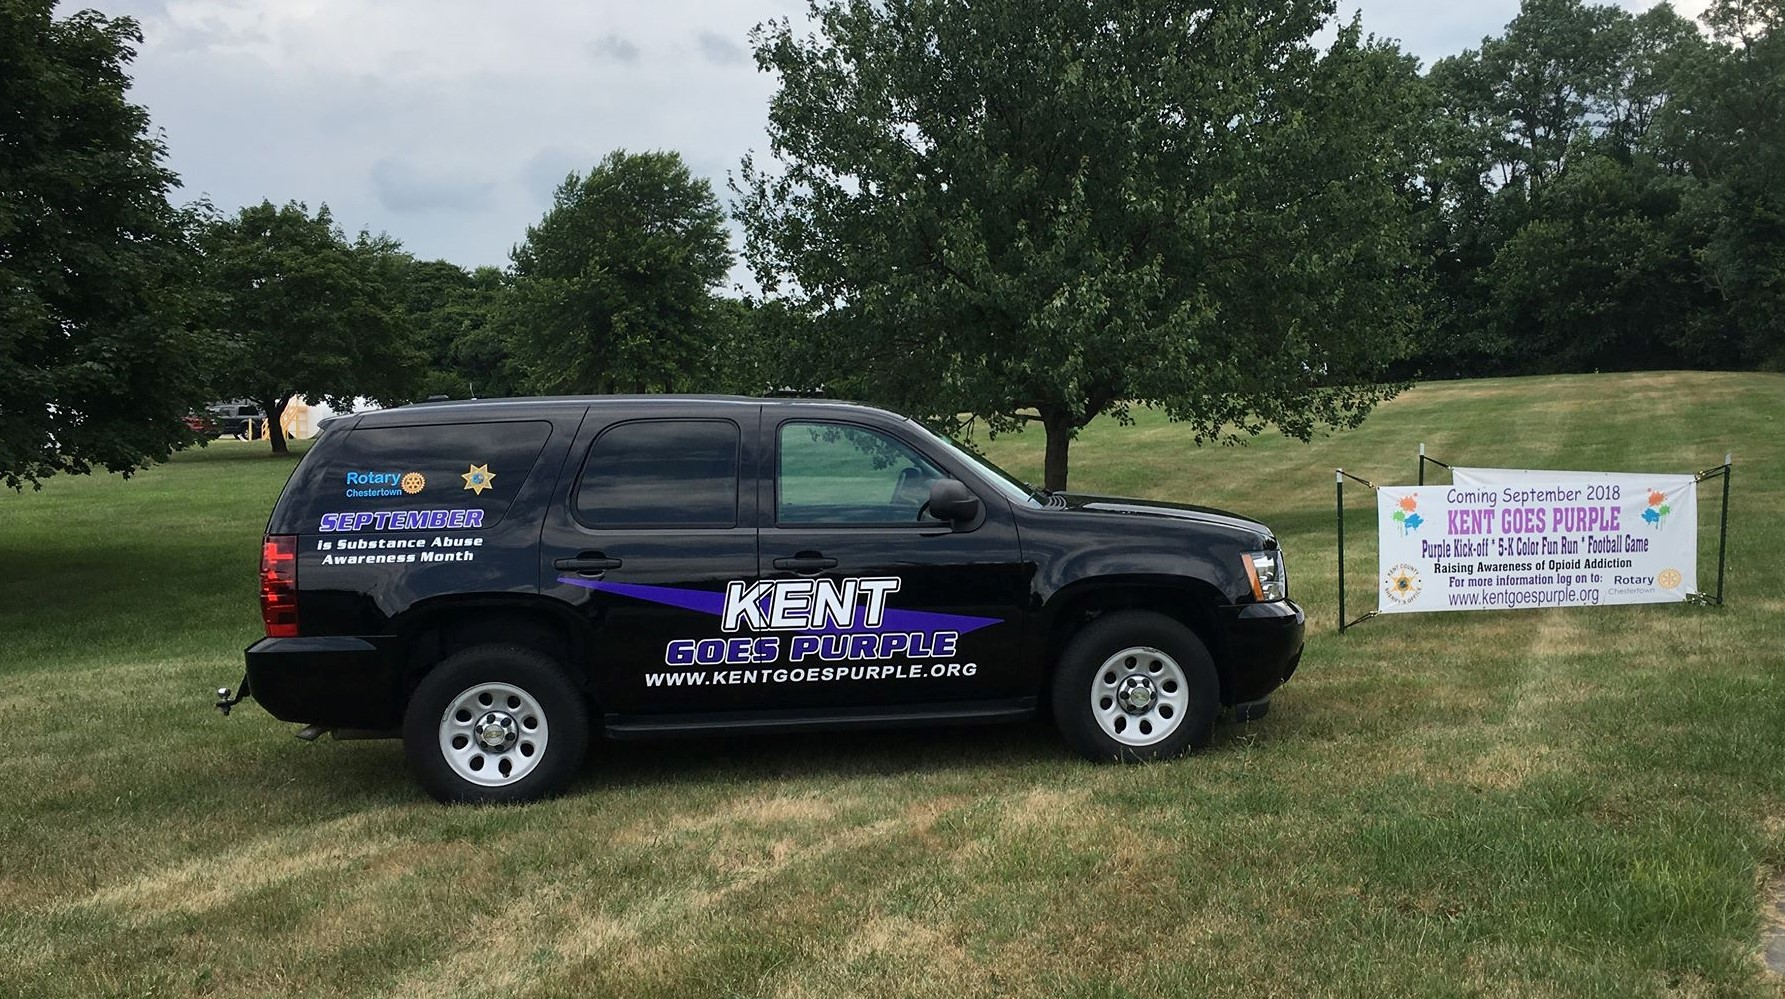 Stand Up Against Substance Abuse This September, 'Go Purple' With Kent Goes Purple